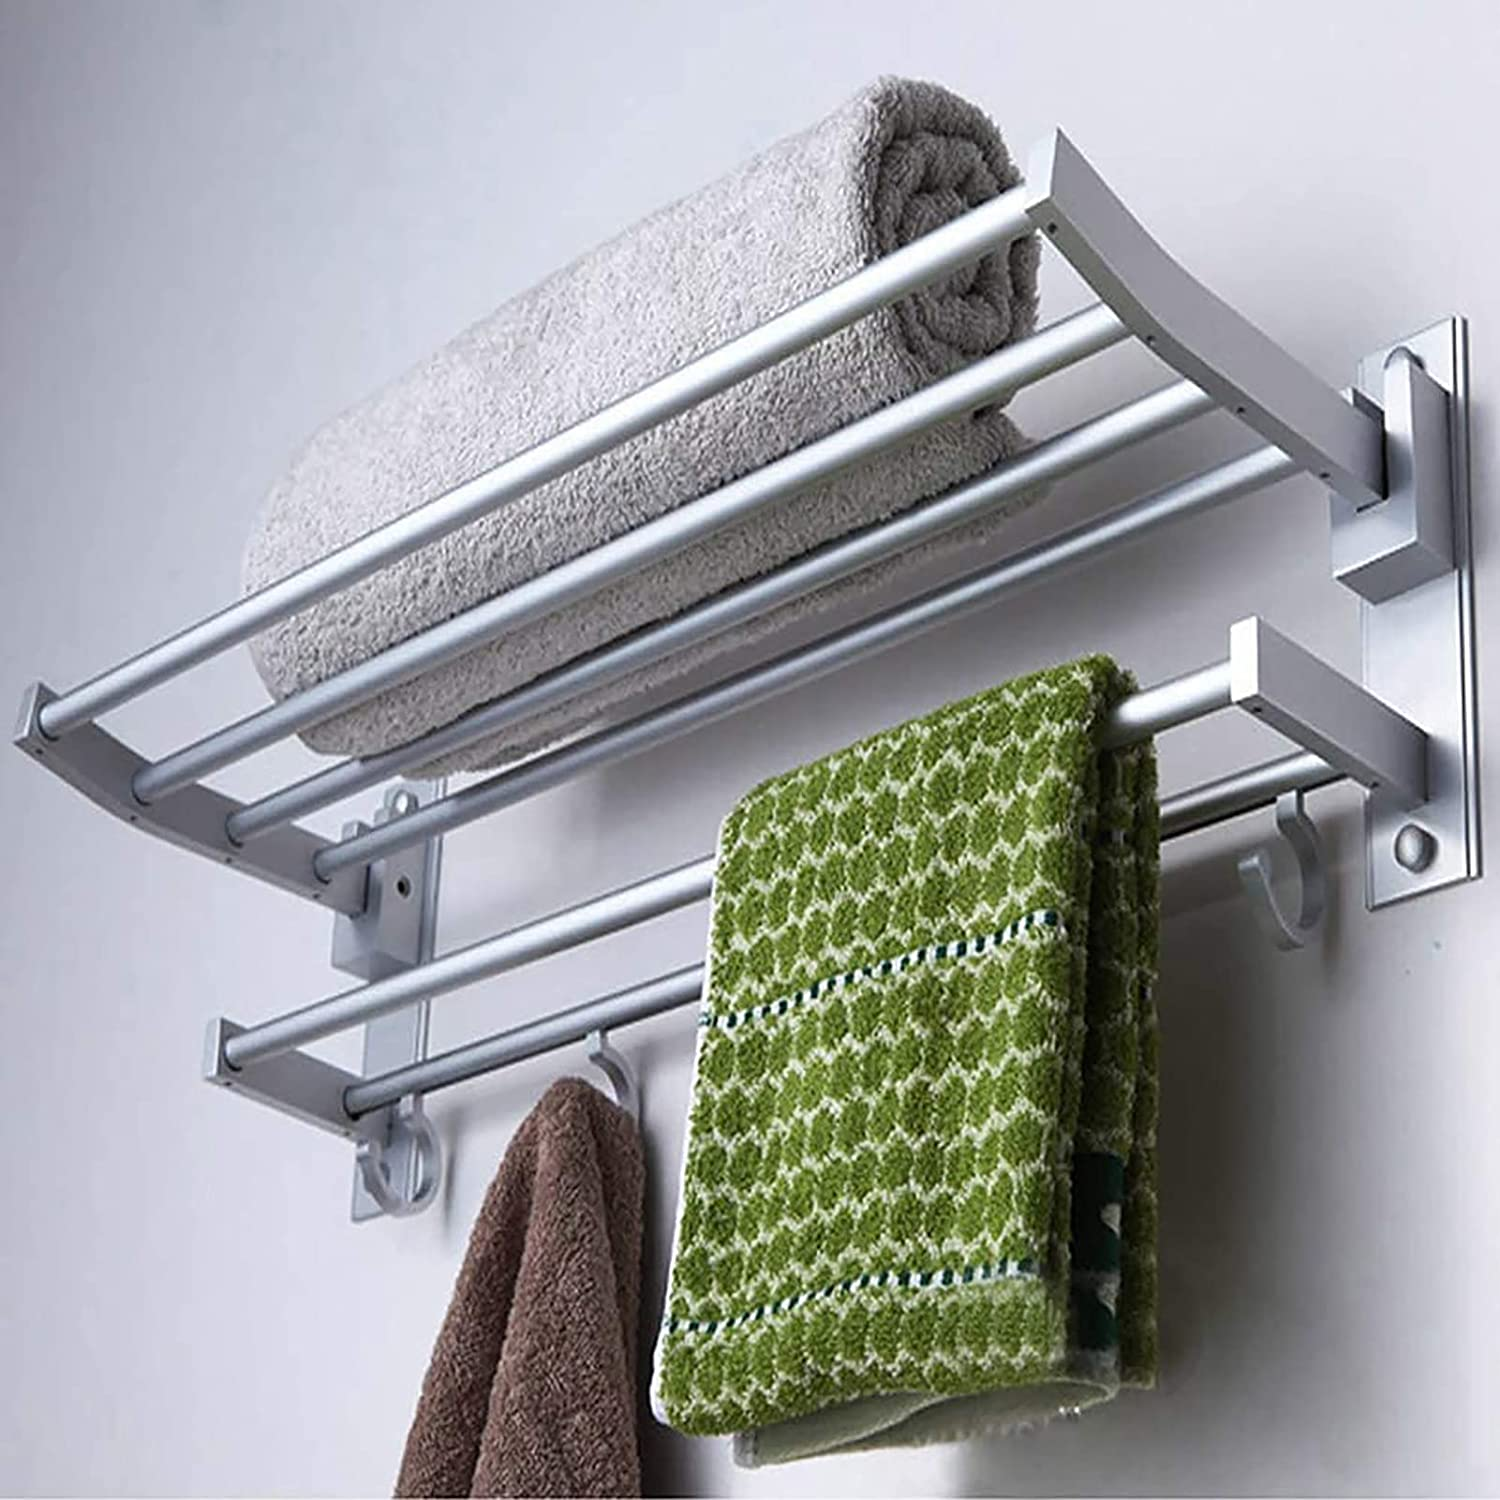 FHGH Floating Shelves Decorative Bar with Towel Nippon regular agency Mail order cheap Storage